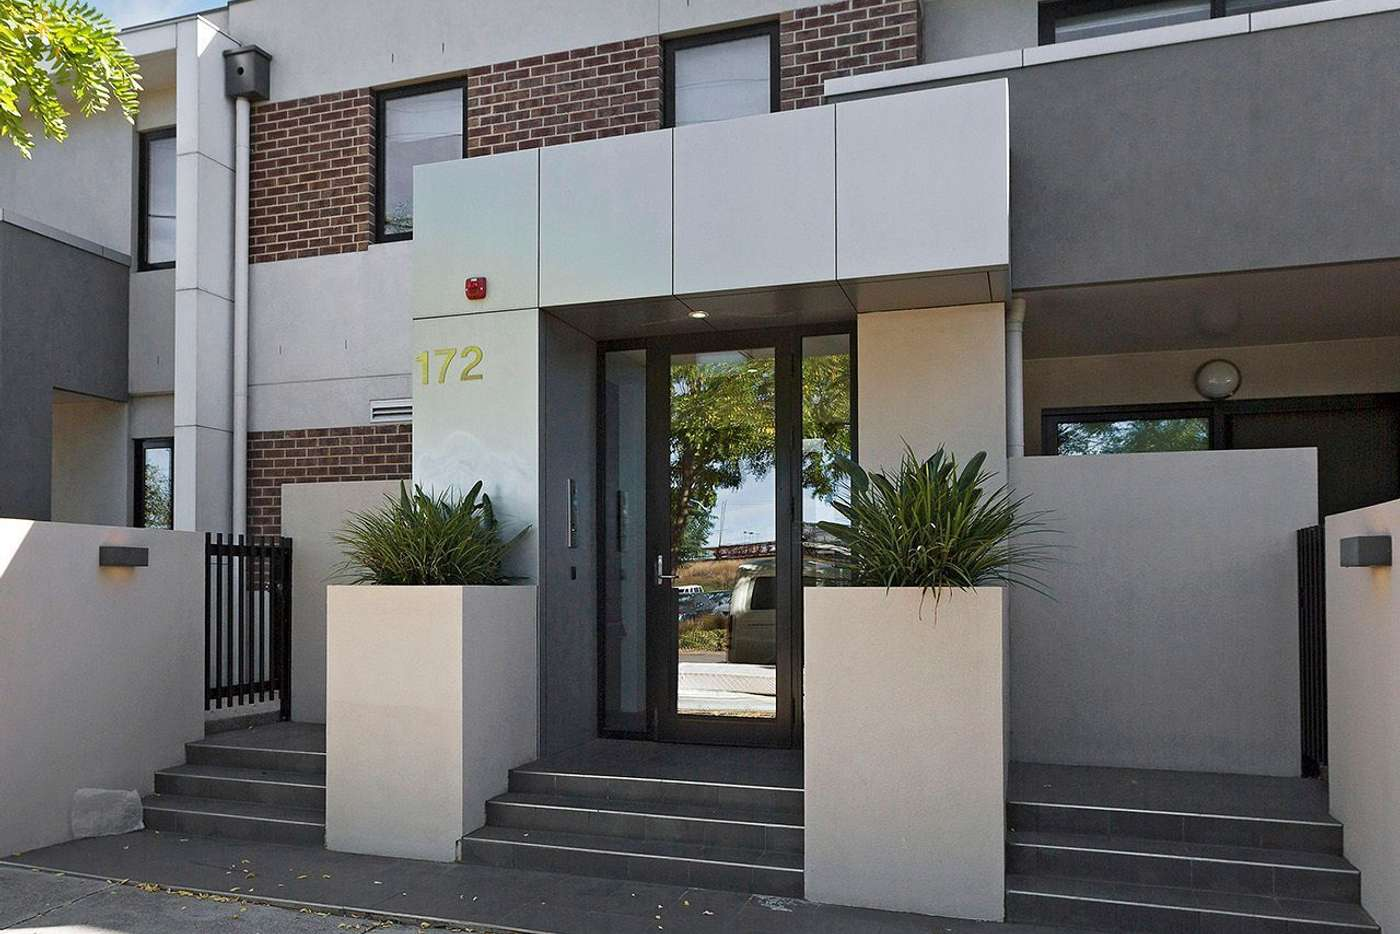 Main view of Homely apartment listing, 109/172 Rupert Street, West Footscray VIC 3012